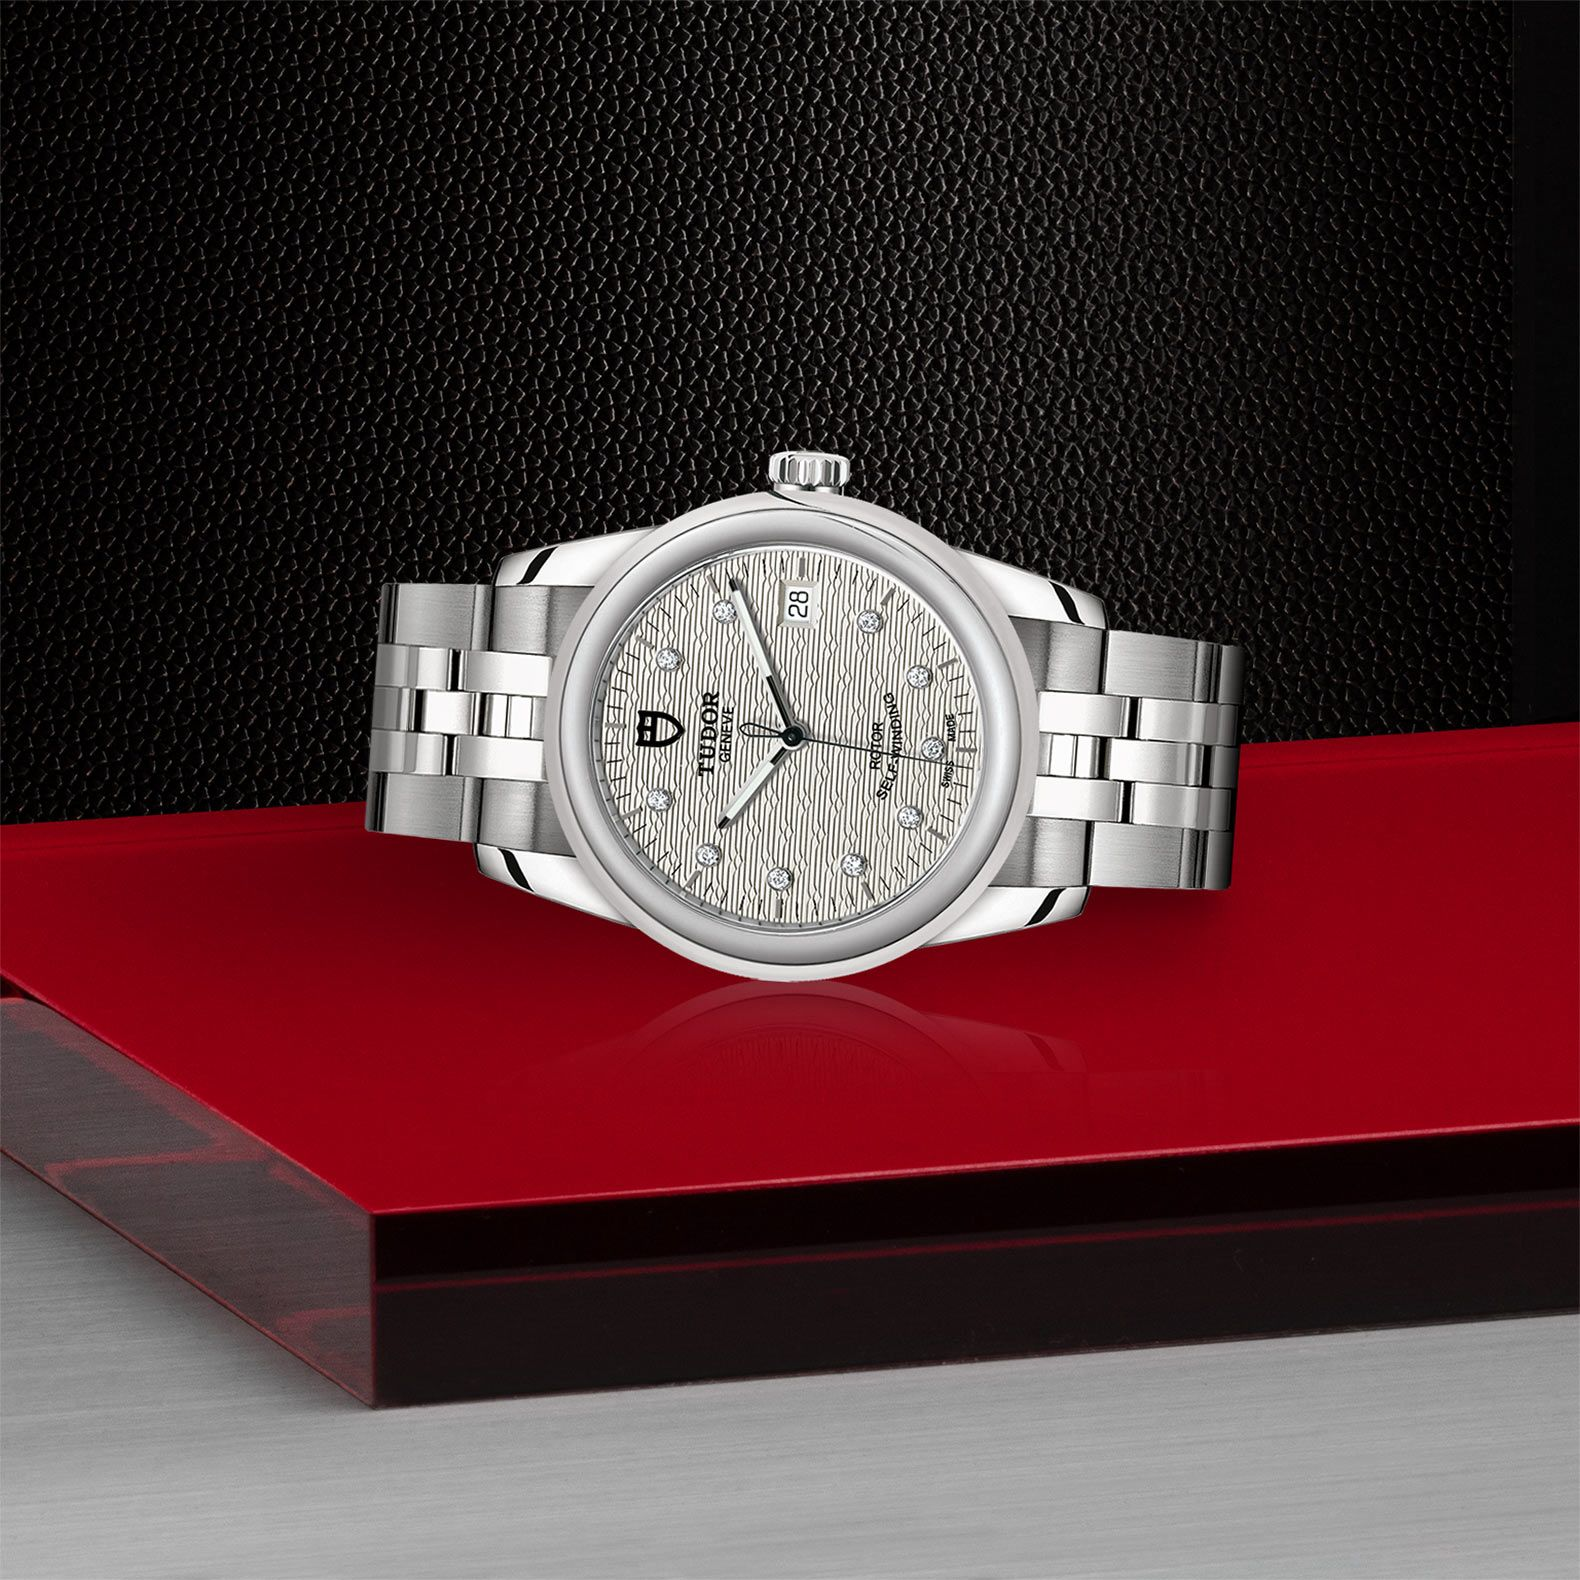 GLAMOUR DATE 36 55000 - 0004